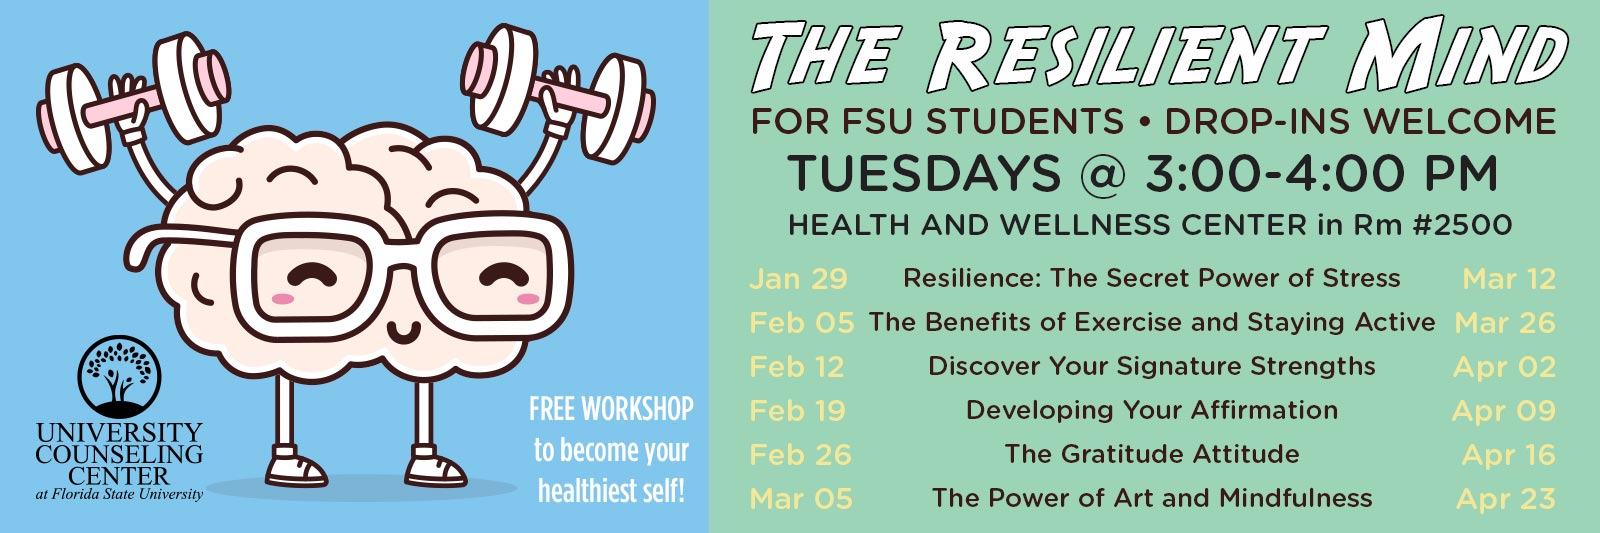 The Resilient Mind FOR FSU STUDENTS • DROP-INS WELCOME TUESDAYS @ 3:00-4:00 PM • HEALTH AND WELLNESS CENTER in Rm #2500